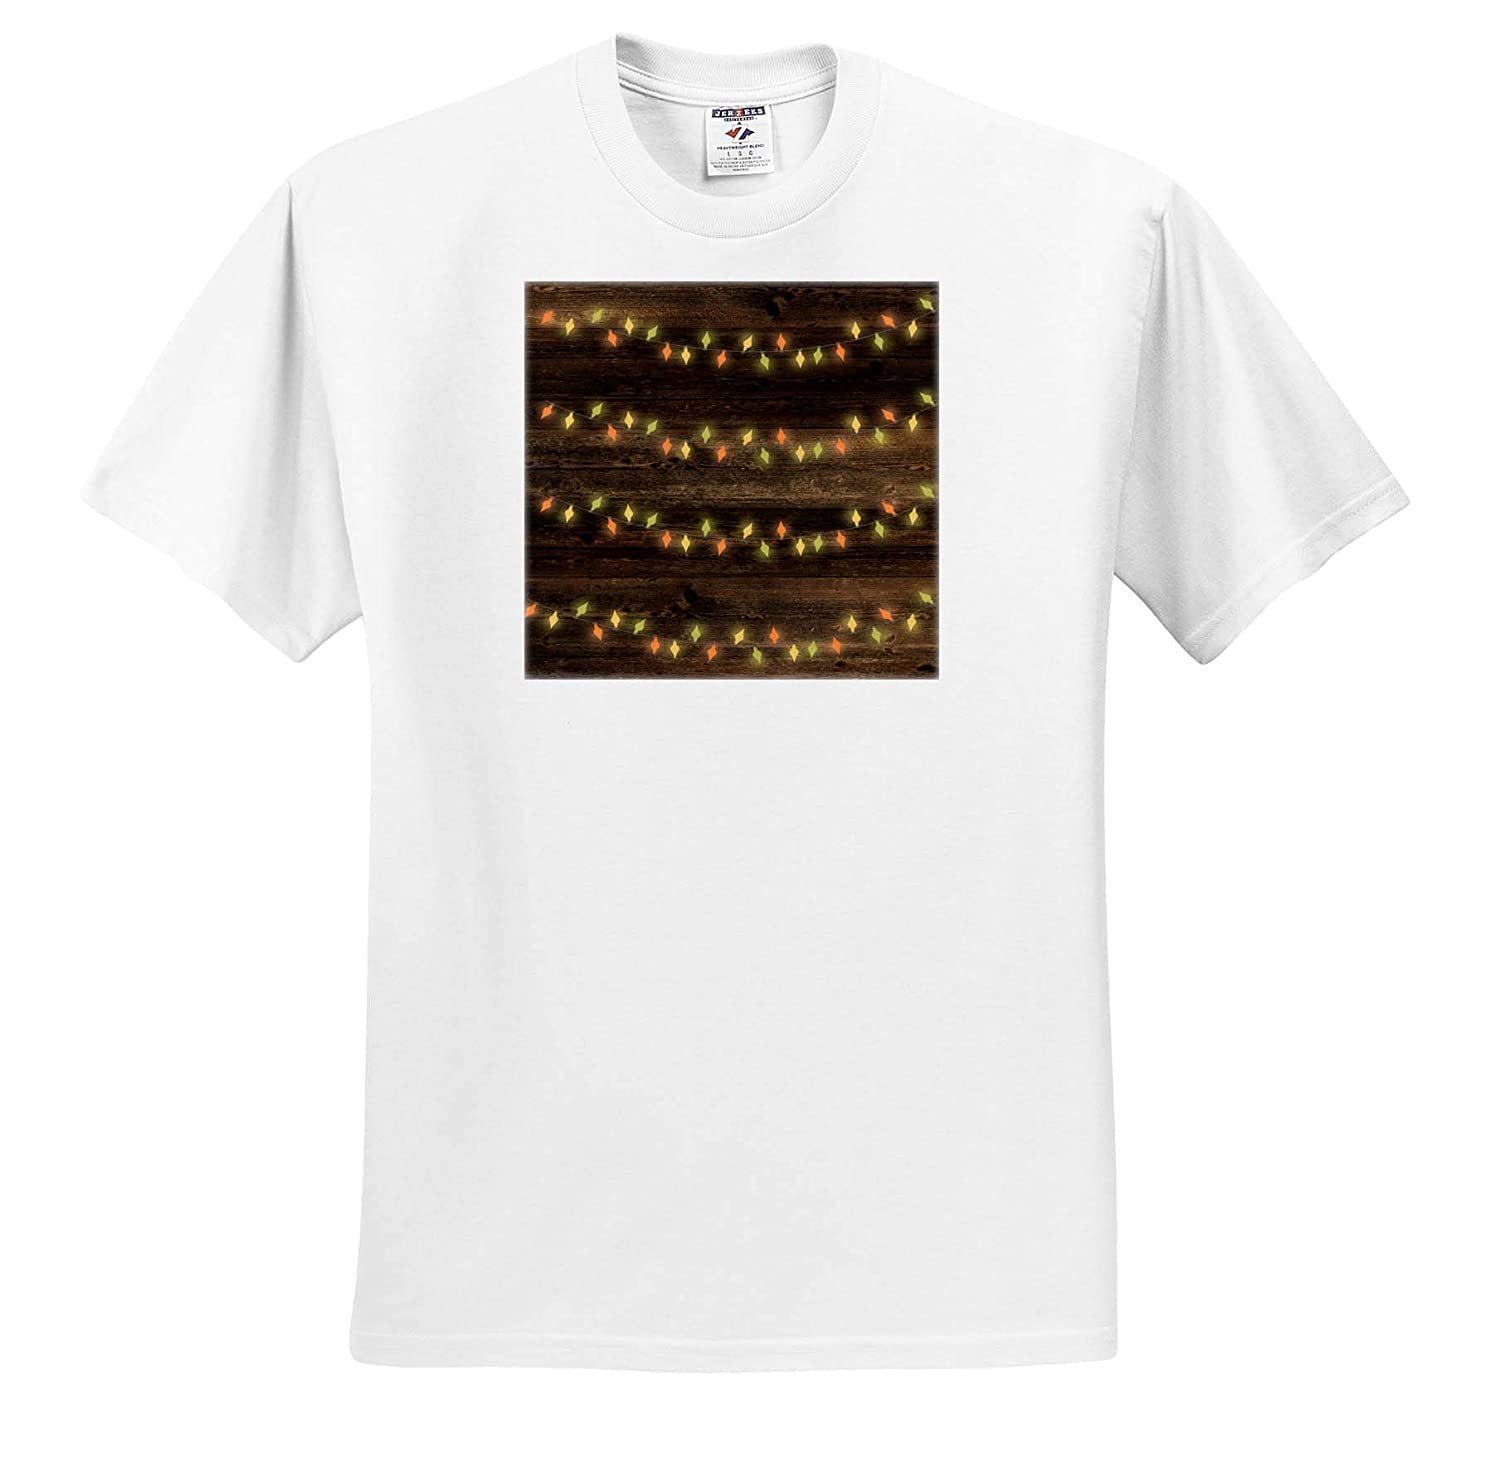 3dRose Anne Marie Baugh Image of Brown Wood with Image of String Lights Adult T-Shirt XL Patterns ts/_316245